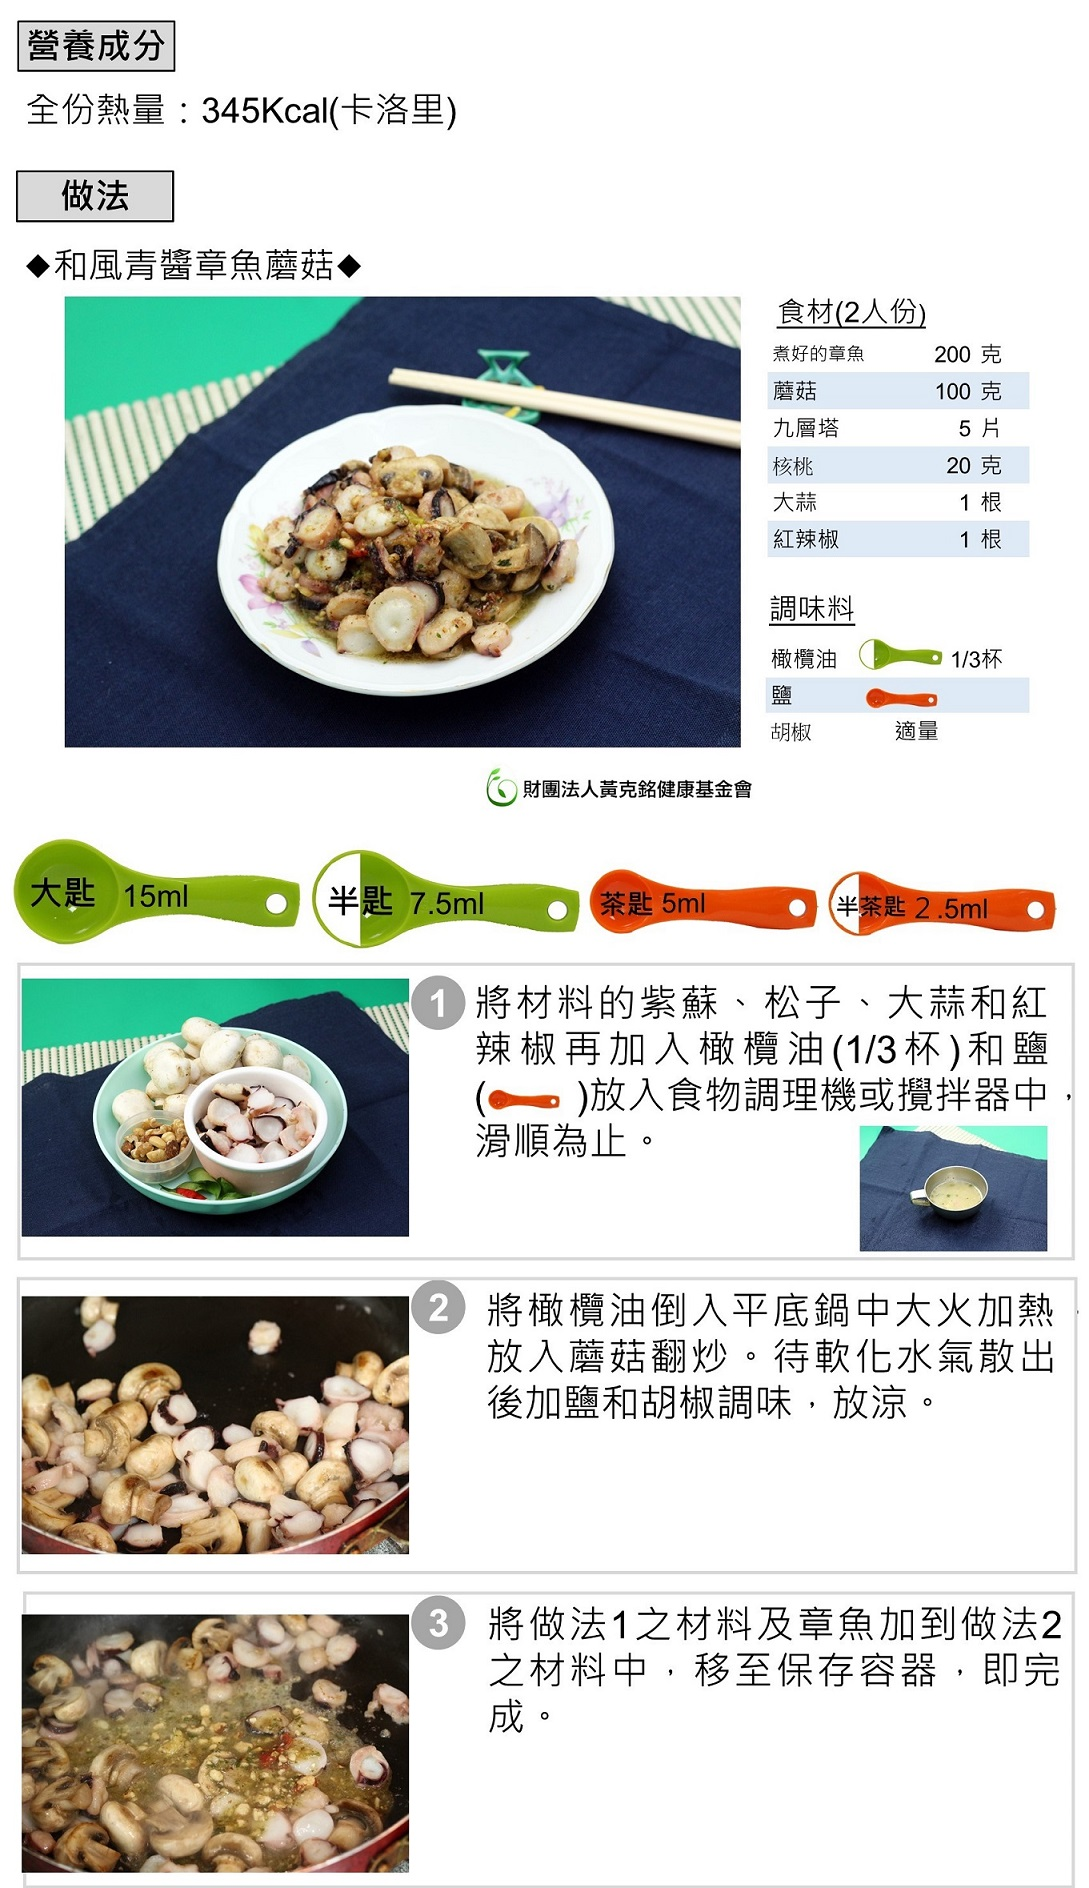 proimages/menu/non-staple/meat-and-vegetables/B310081-2.JPG